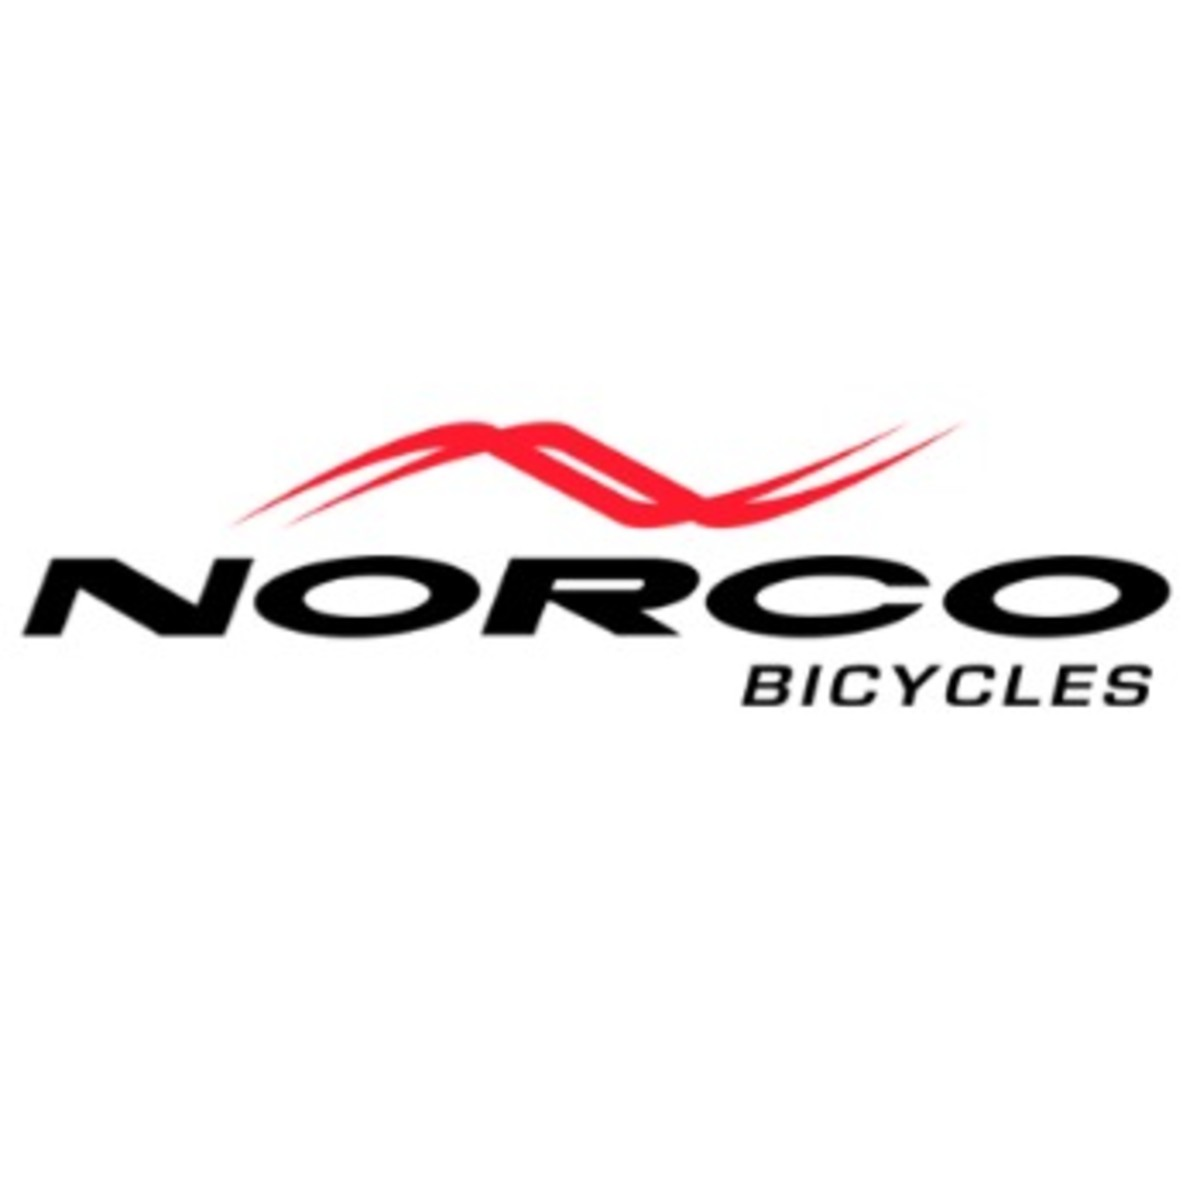 1-norco-logo-for-webjpg.jpg